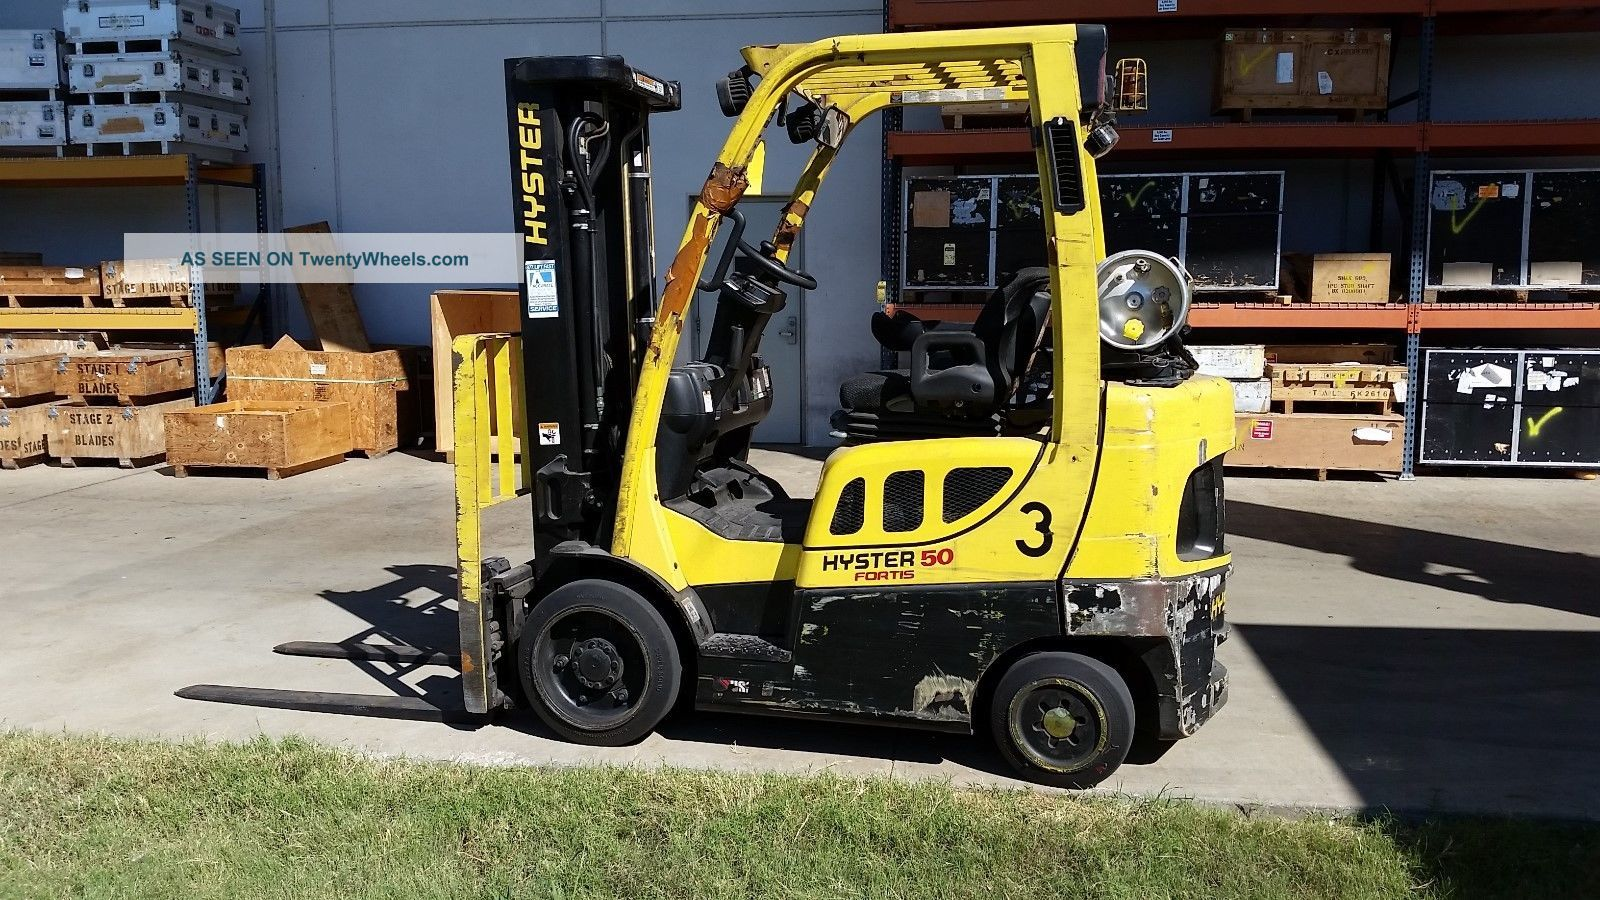 Hyster fortis photo - 10